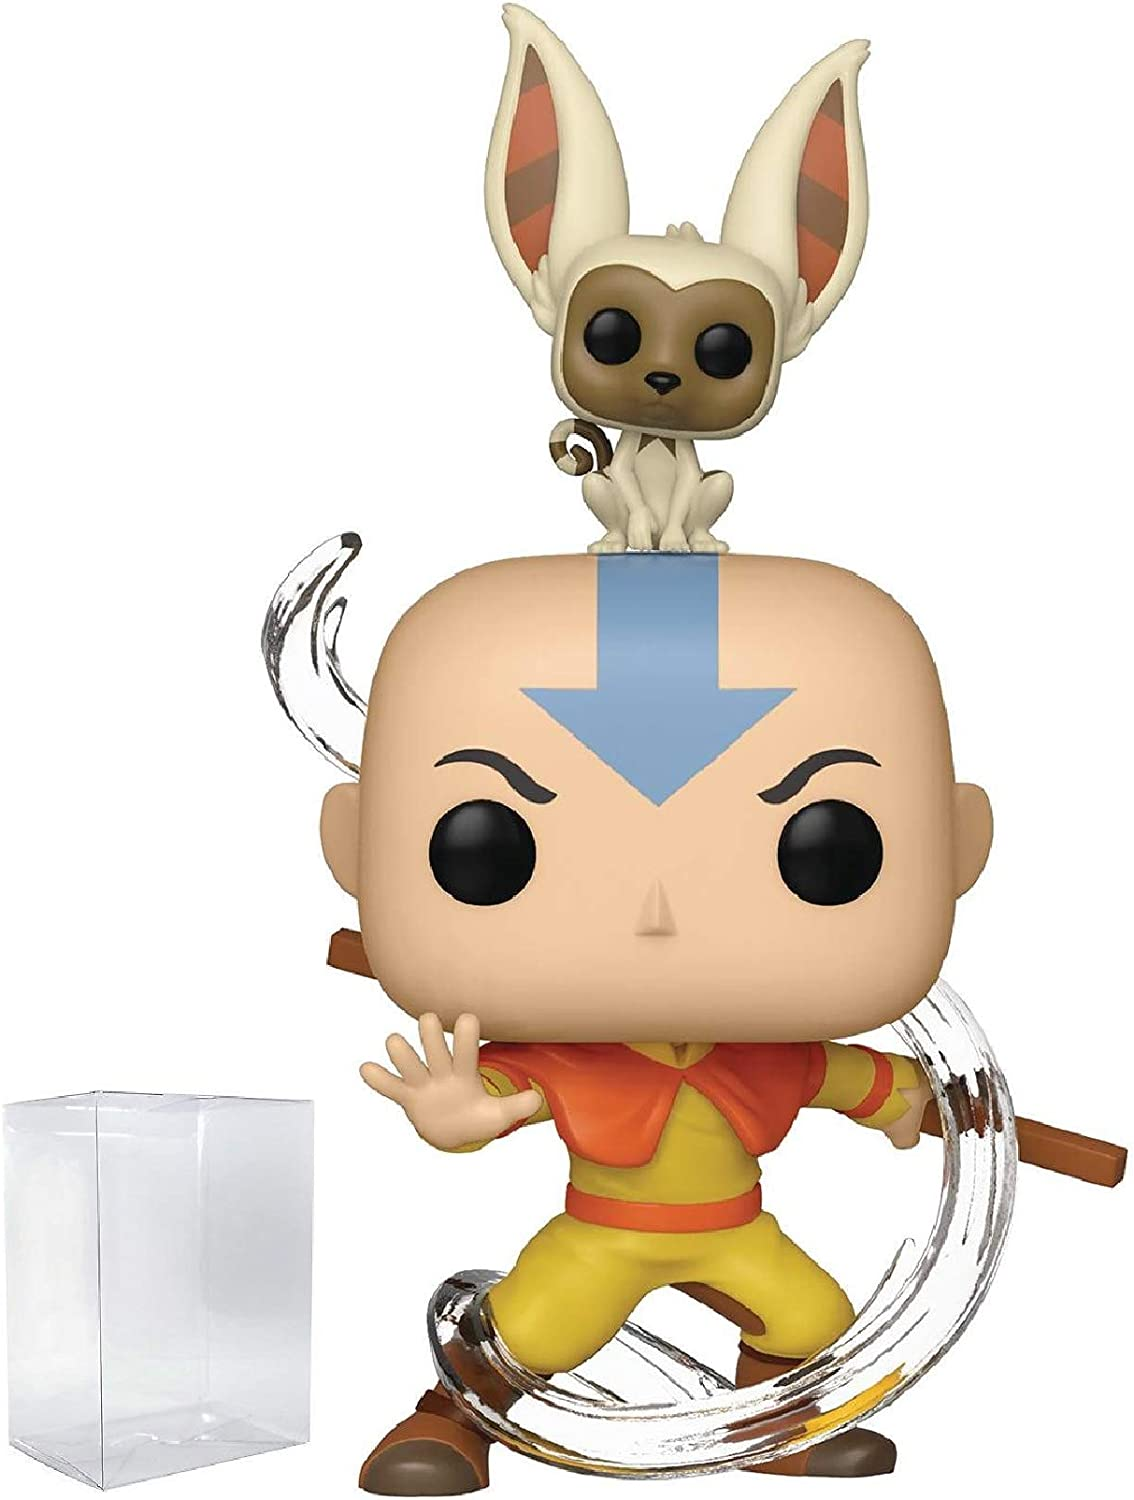 Funko Avatar: The Last Airbender - Aang with Momo Pop! Vinyl Figure (Includes Compatible Pop Box Protector Case)